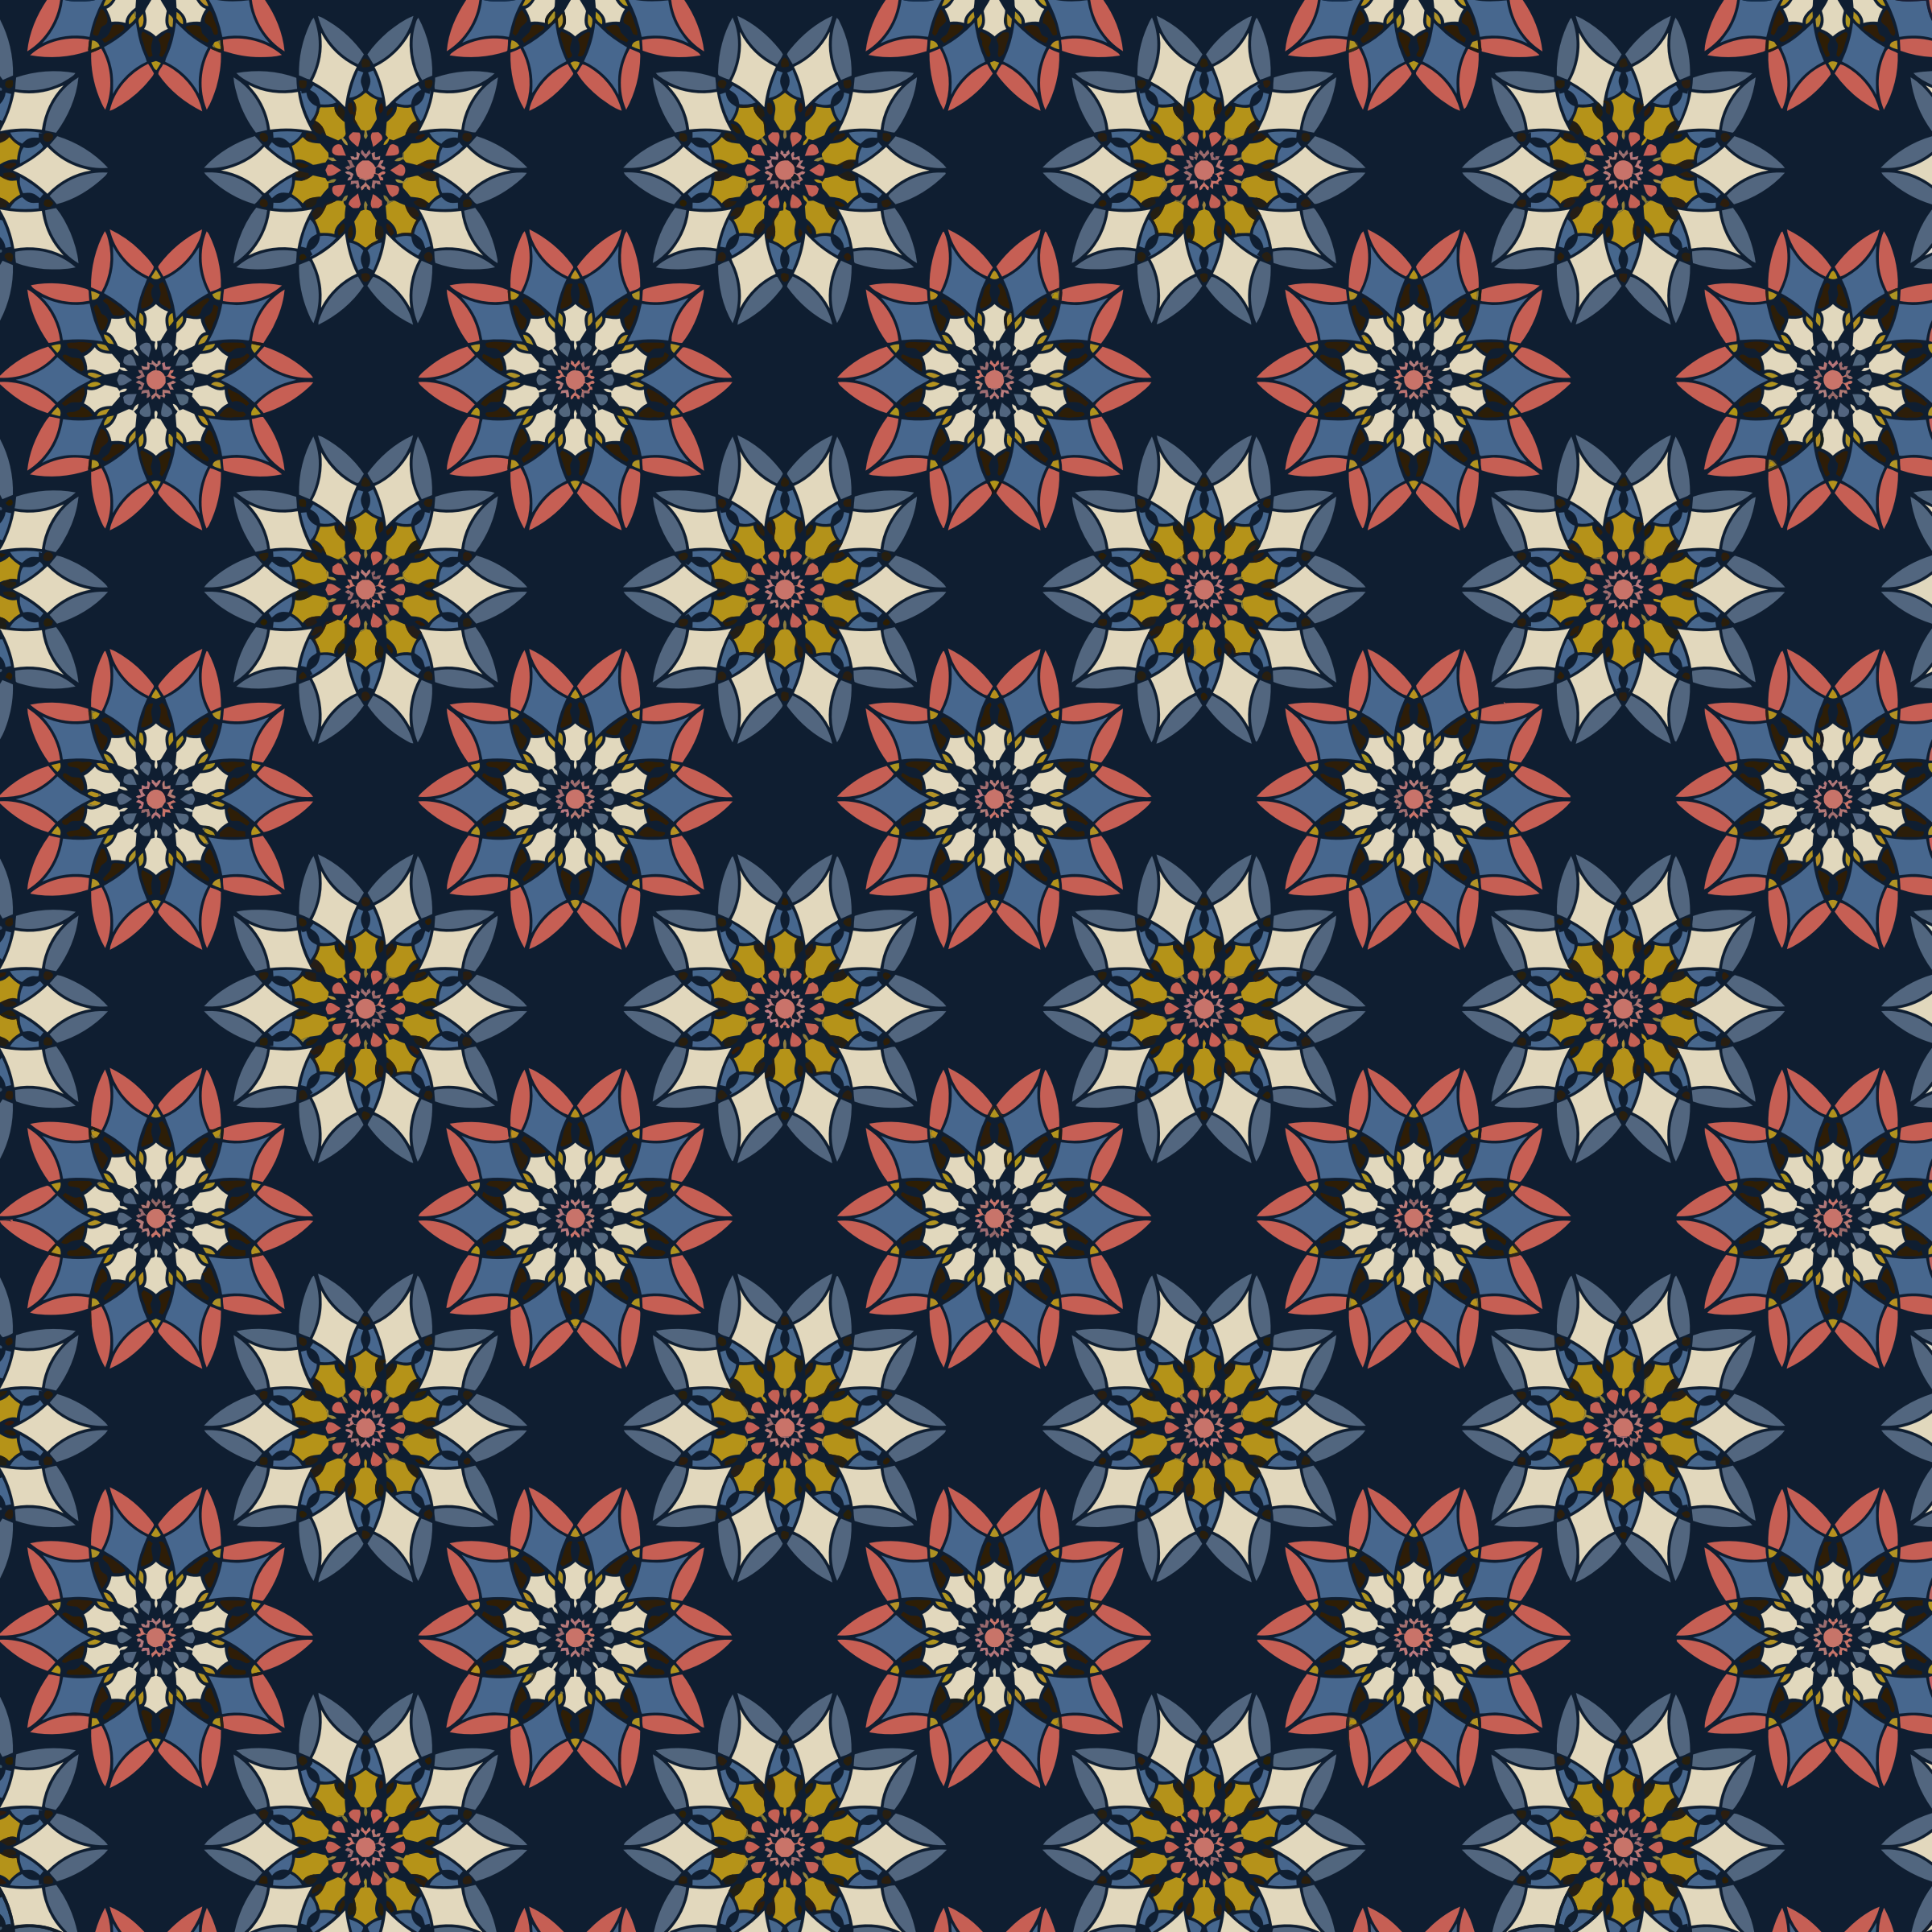 Floral Pattern Background 2 by GDJ